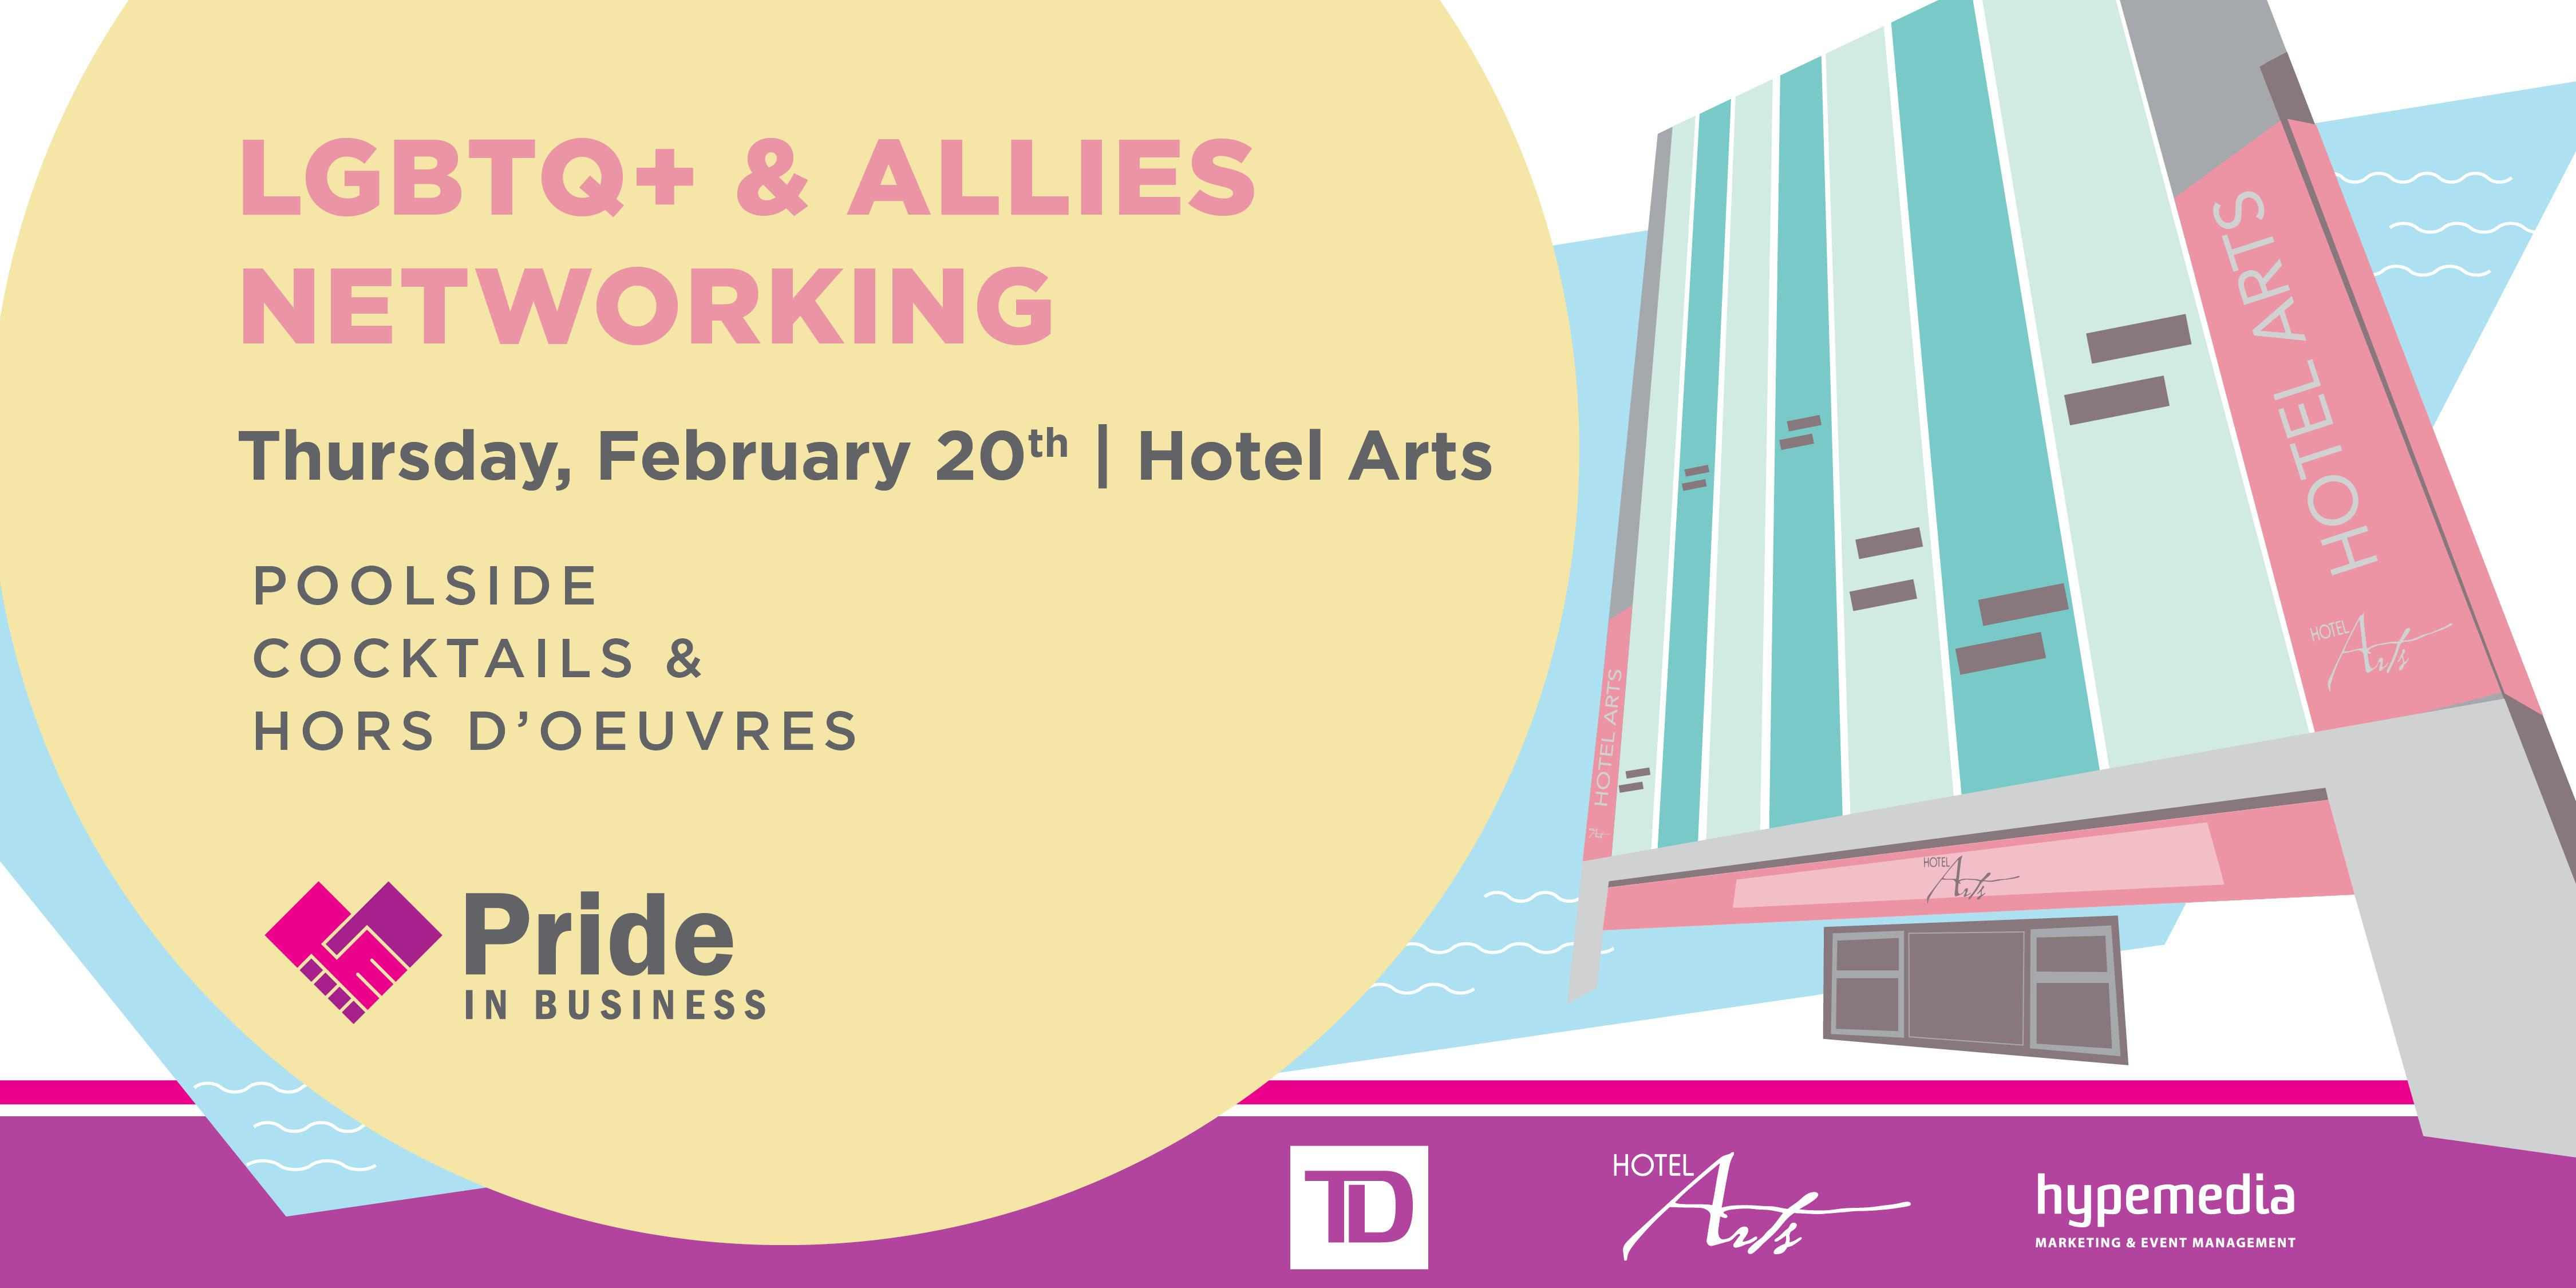 Pride In Business LGBTQ+ & Allies Networking presented by TD